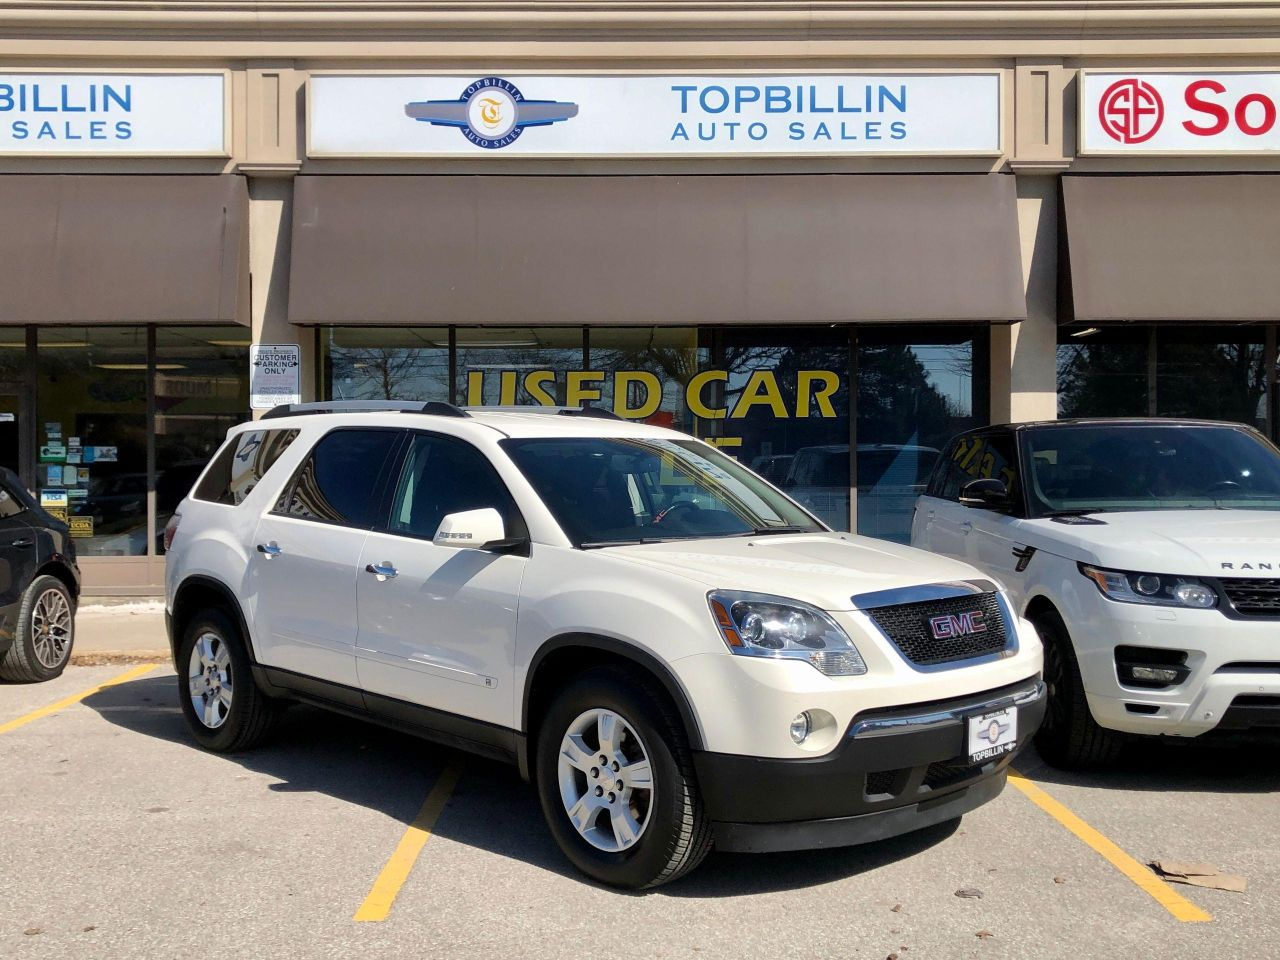 2010 GMC Acadia 2 Years Warranty, 7 Passenger